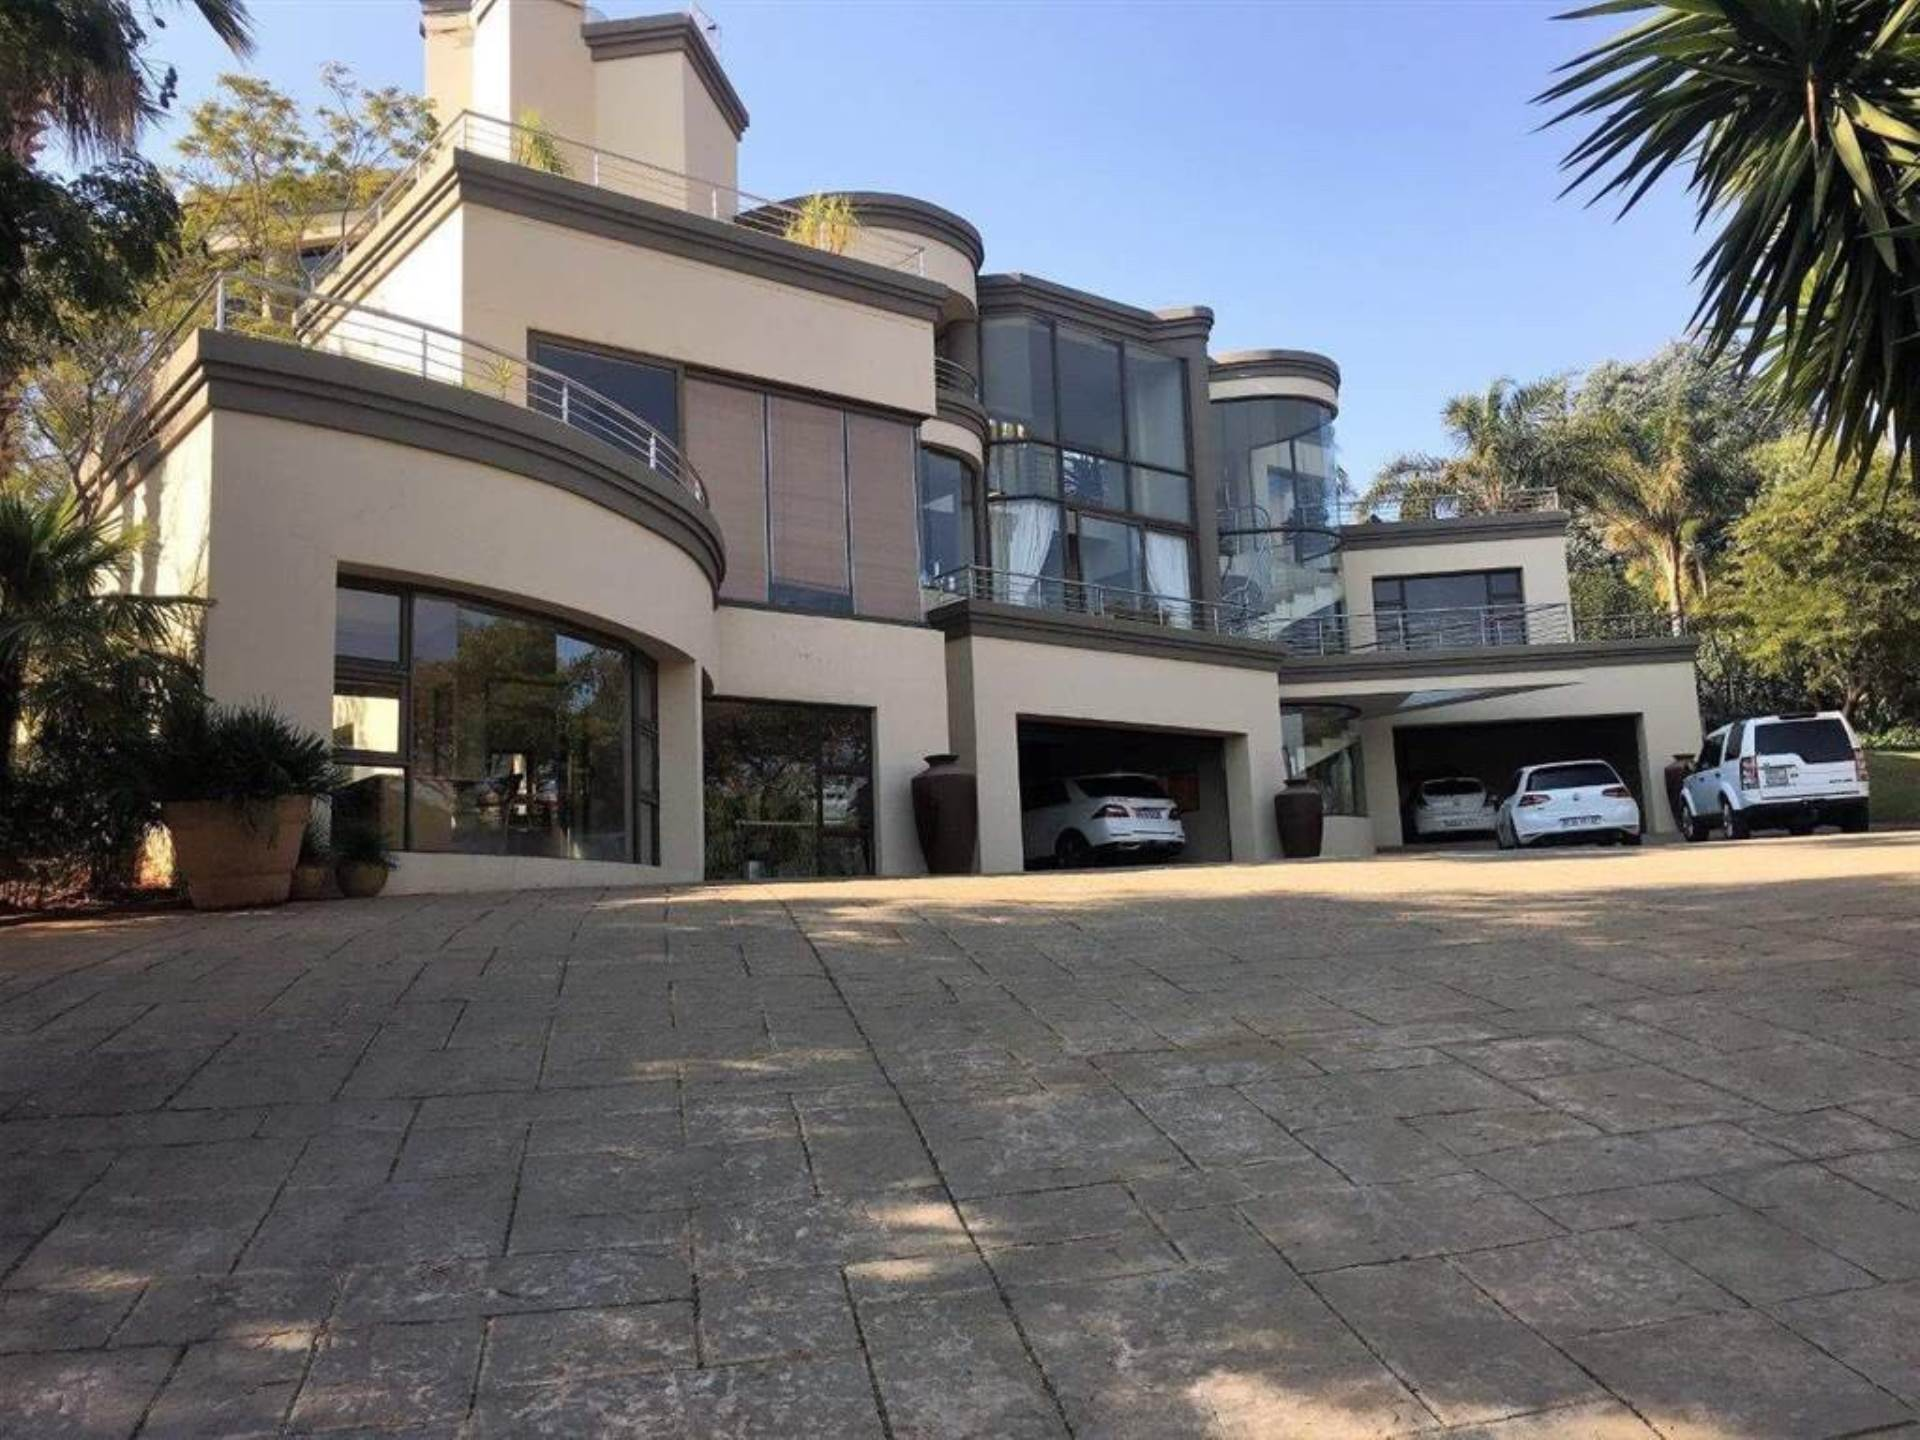 Property and Houses for sale in Mooikloof Equestrian Estate, House, 4 Bedrooms - ZAR 6,450,000